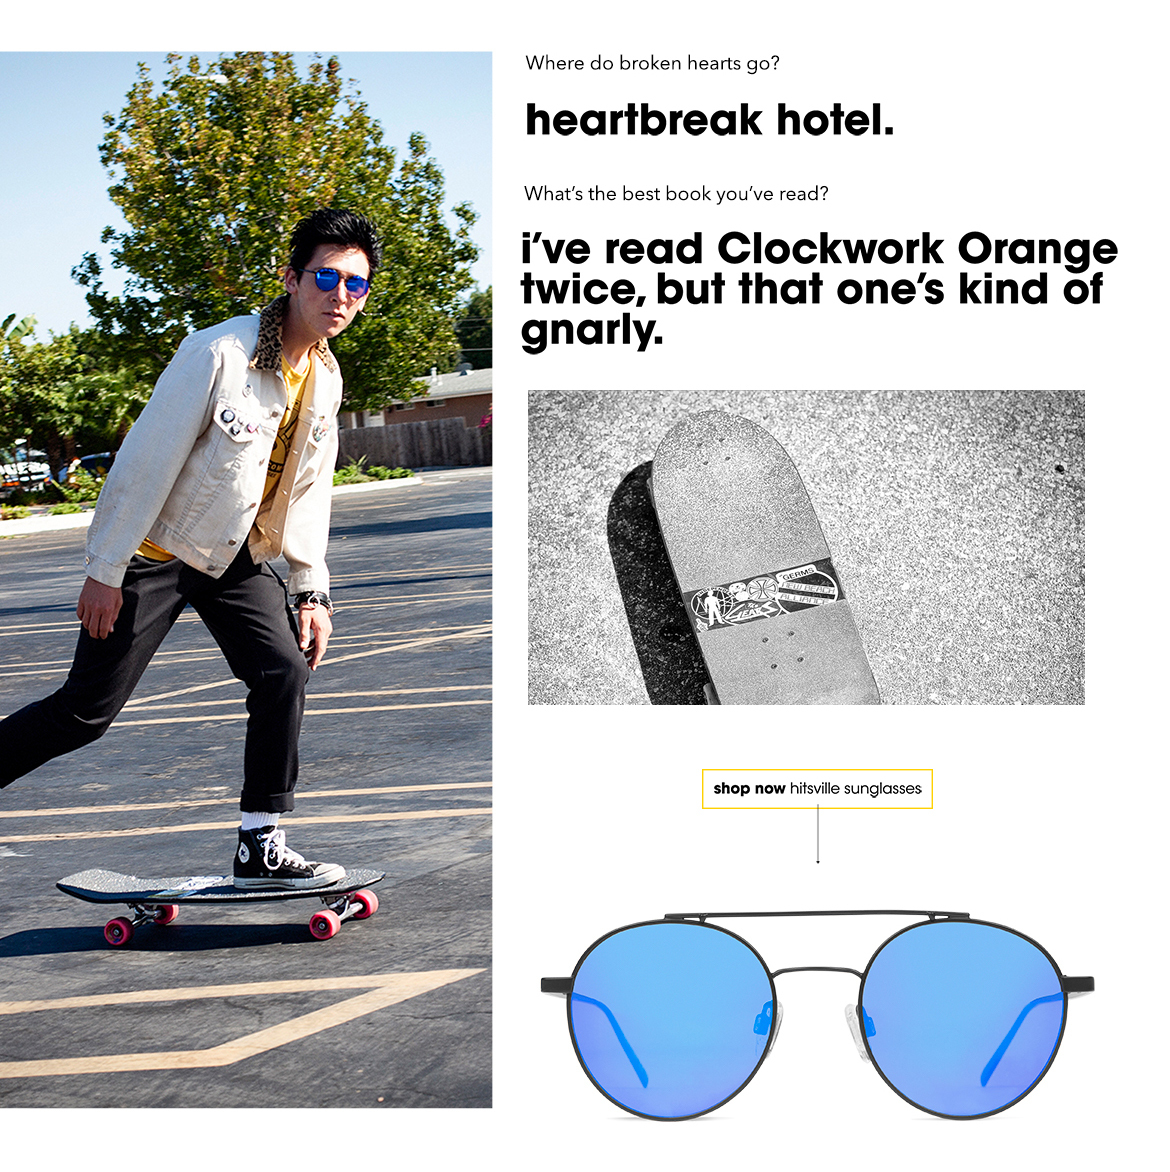 Skater guy in round metal sunglasses